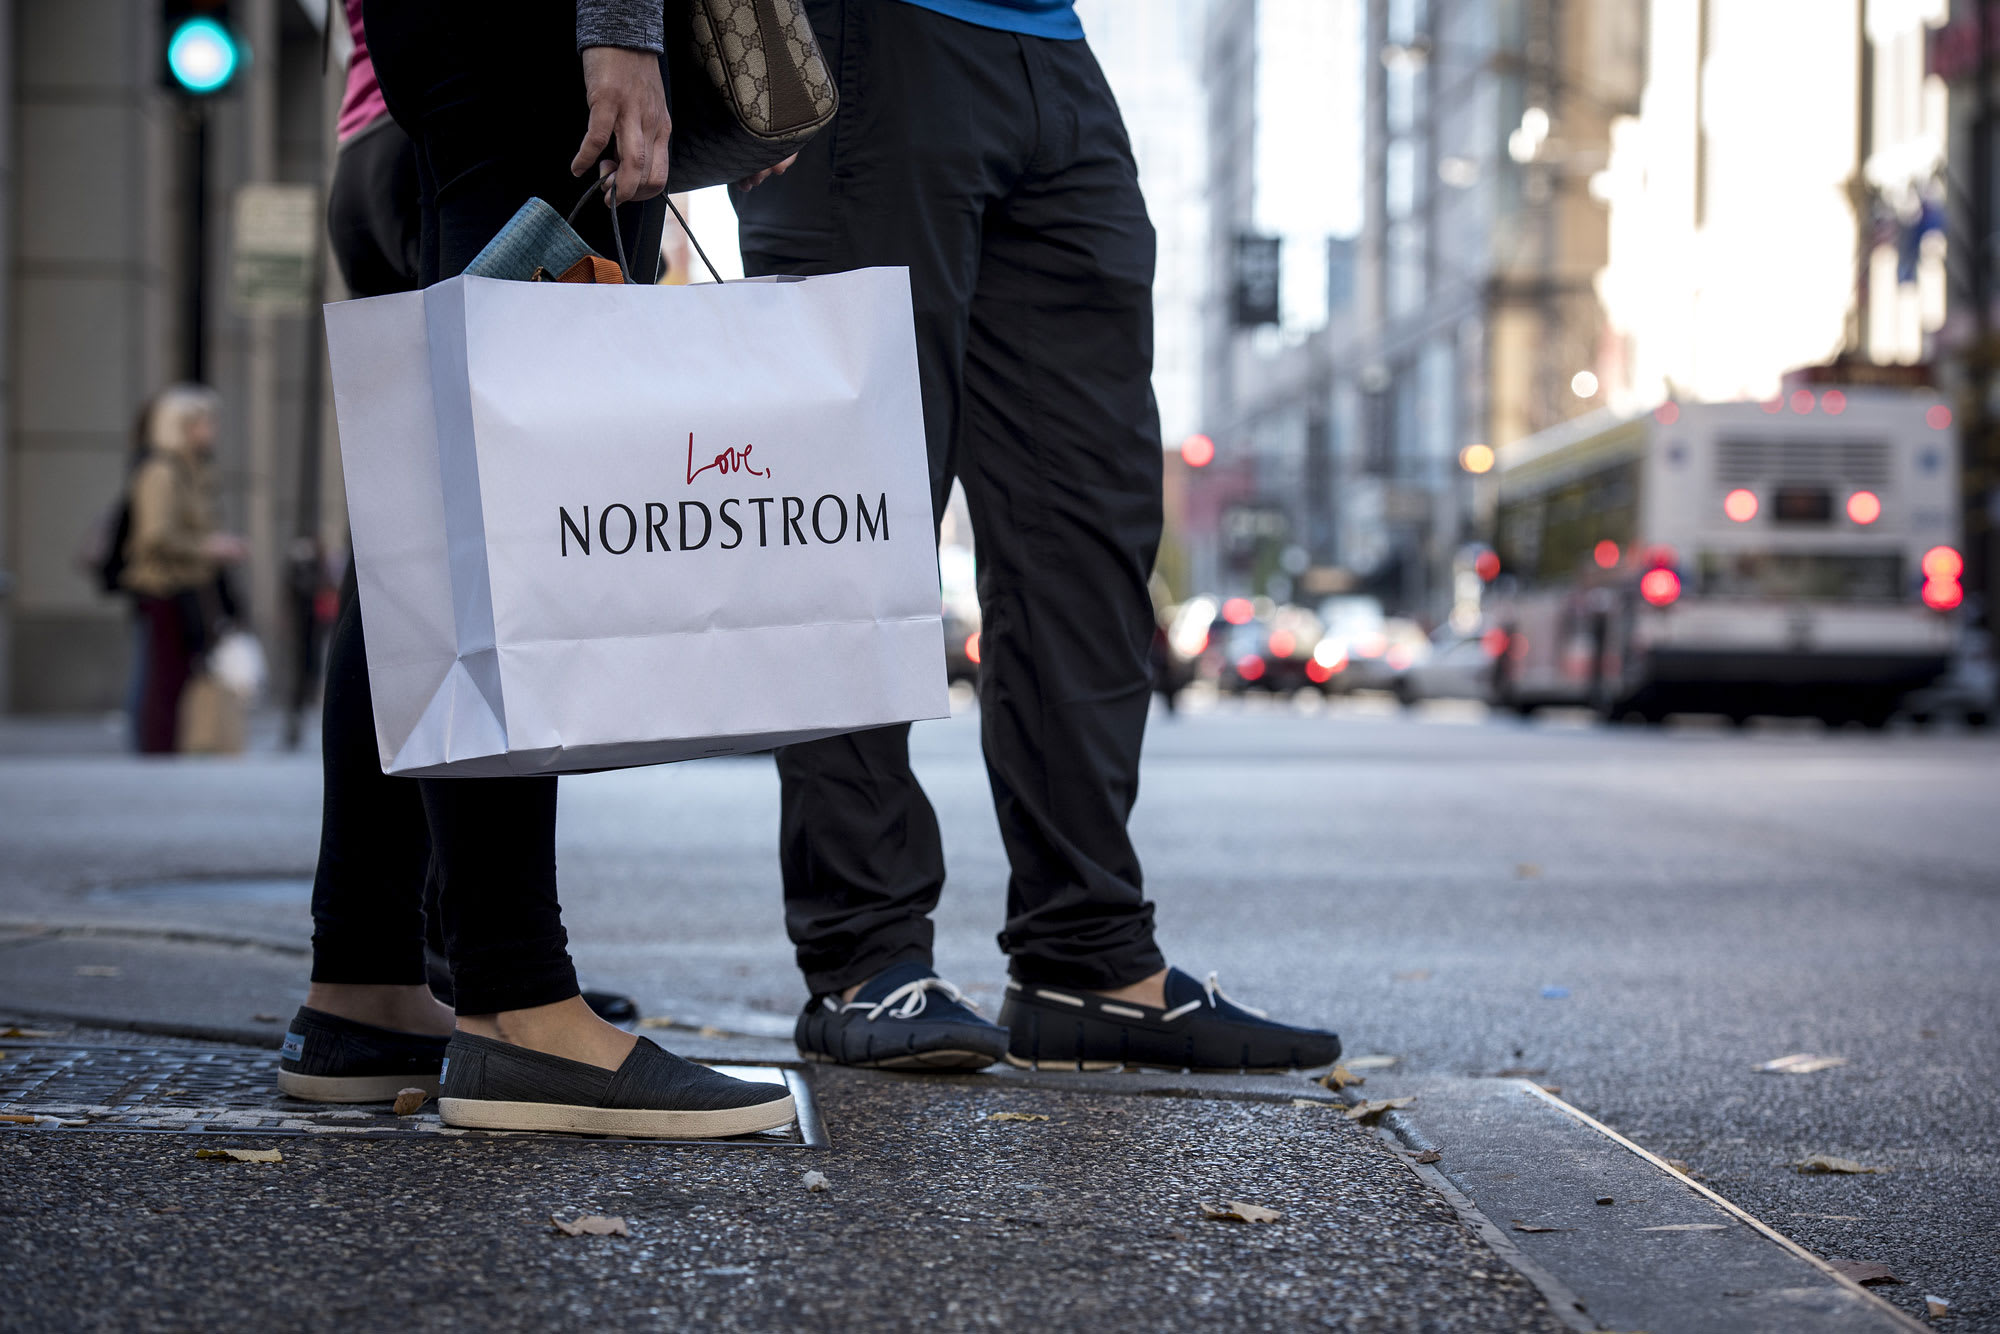 Stocks making the biggest moves after hours: Nordstrom, HPE, Ambarella and more